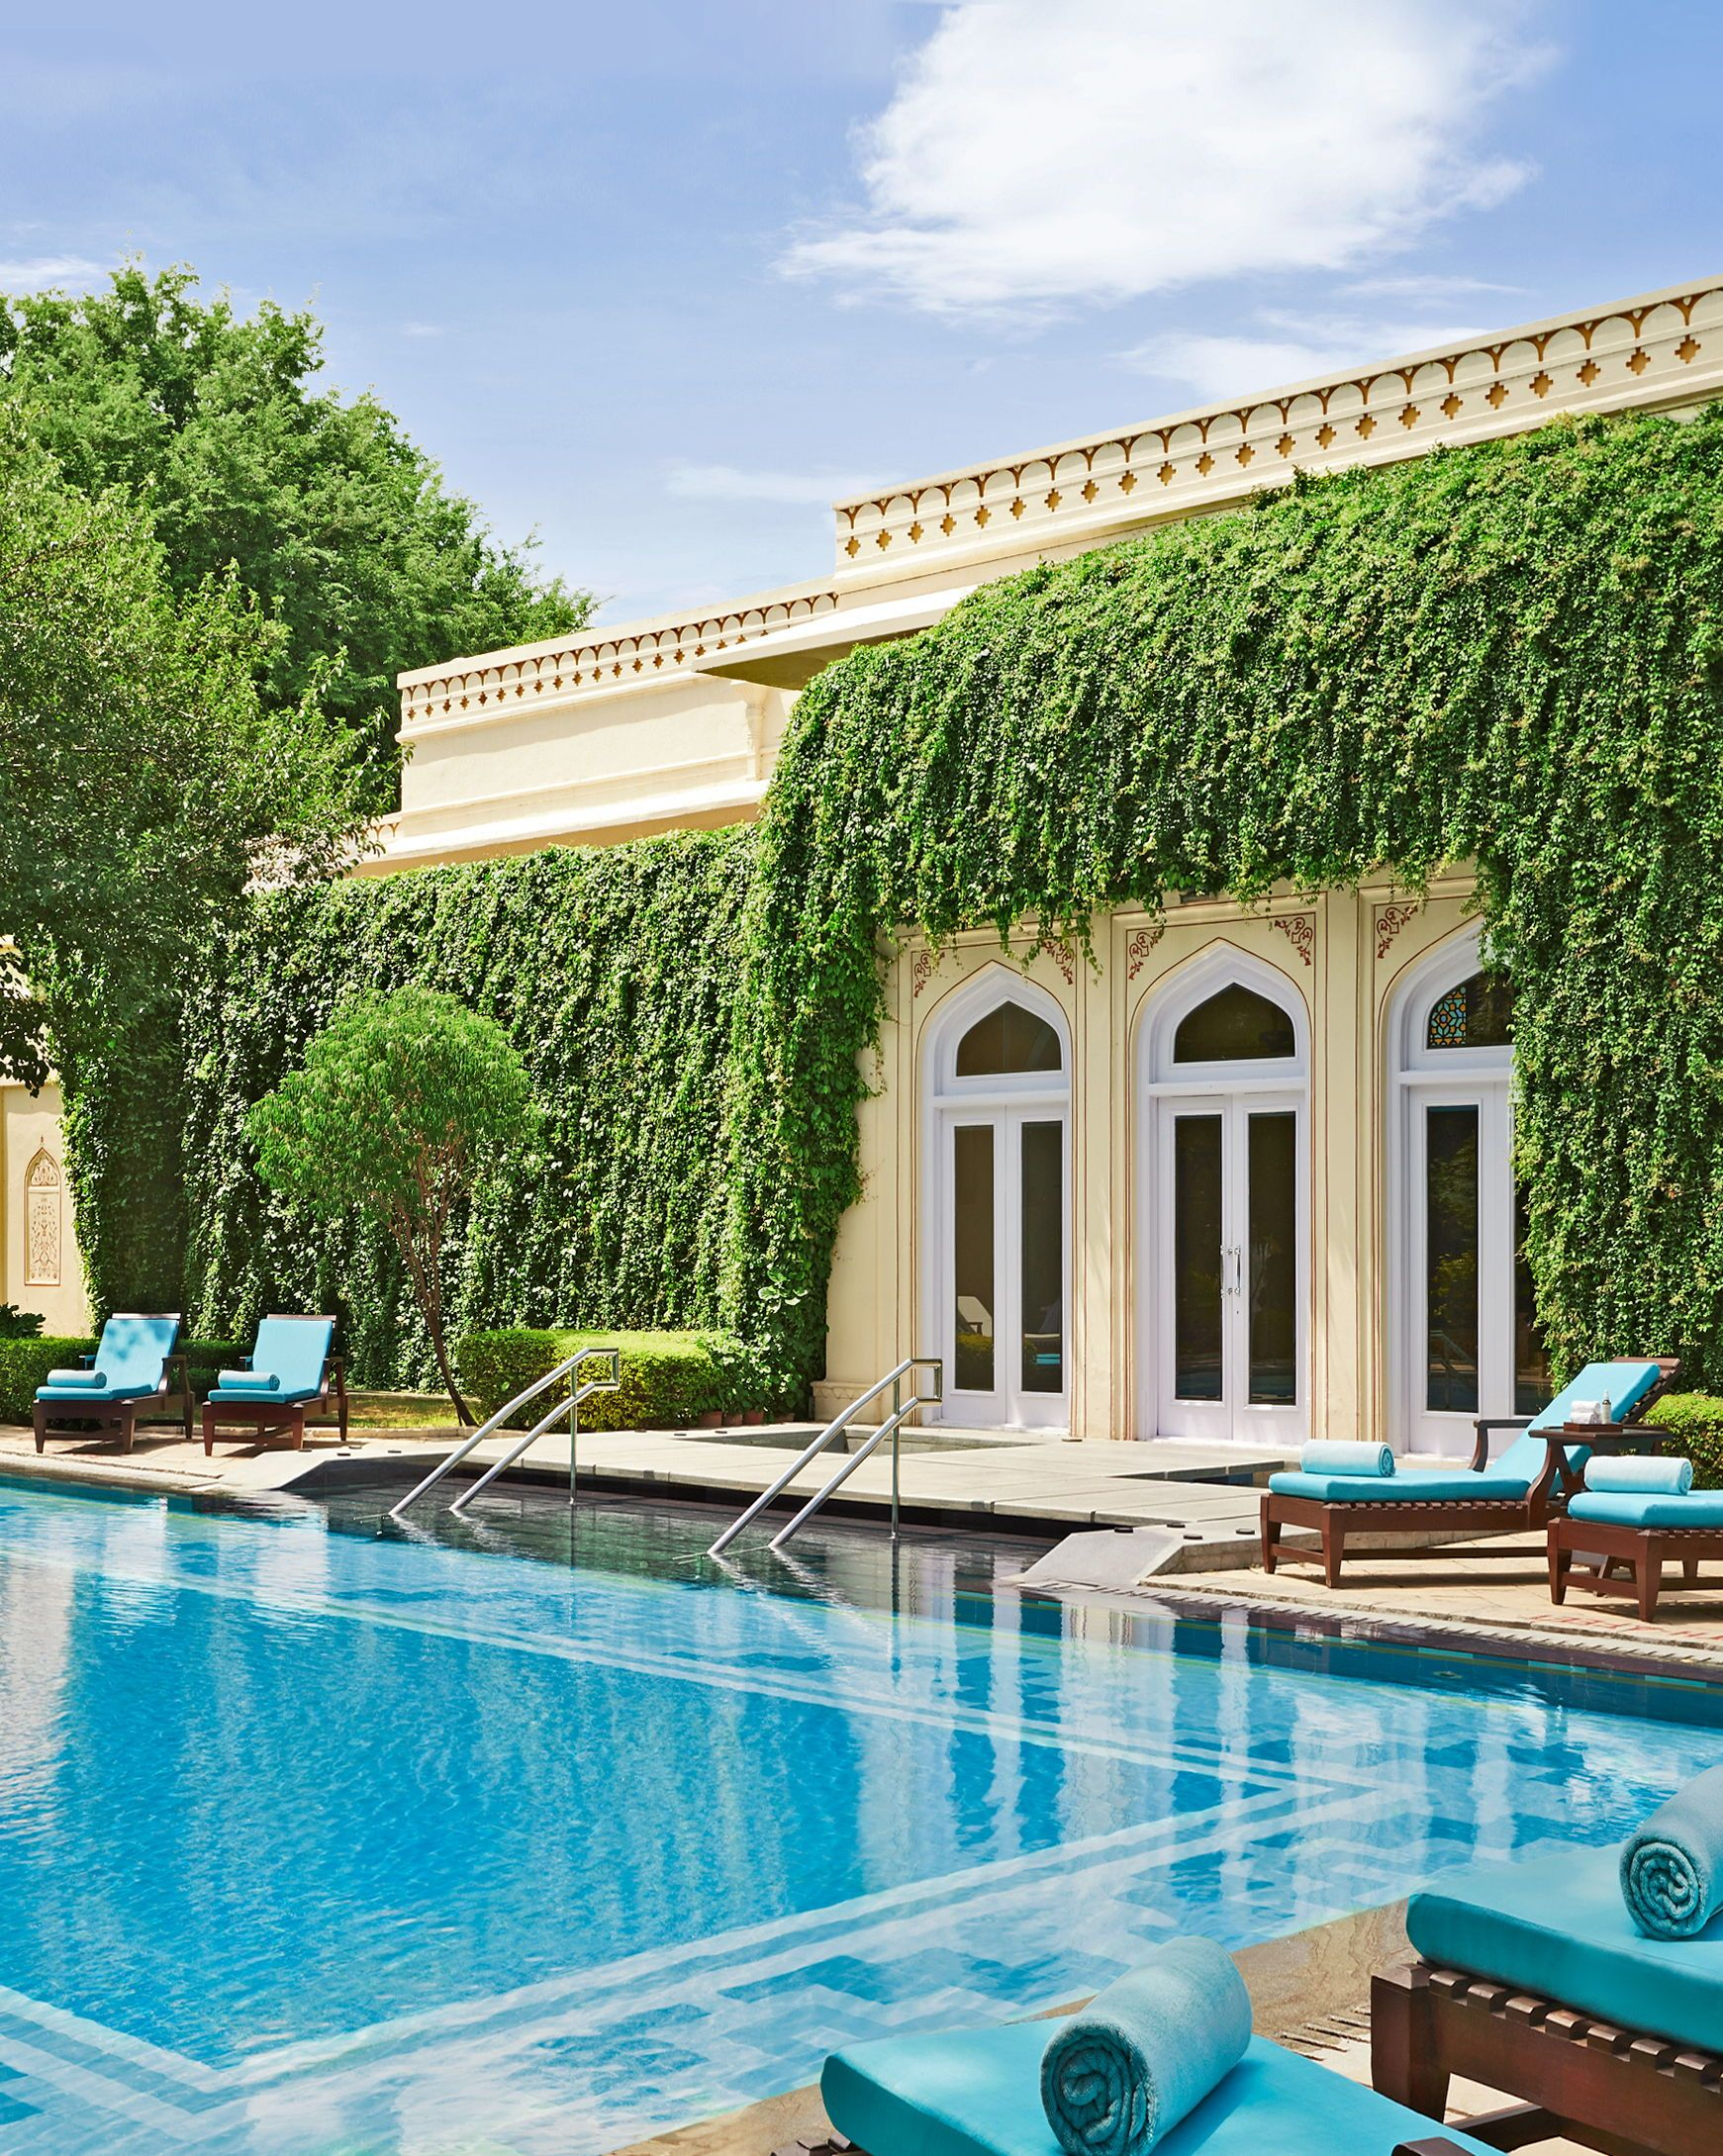 Rambagh Palace Jaipur India Luxury Hotel Review By Travelplusstyle Luxury Hotel Hotels Design Hotel